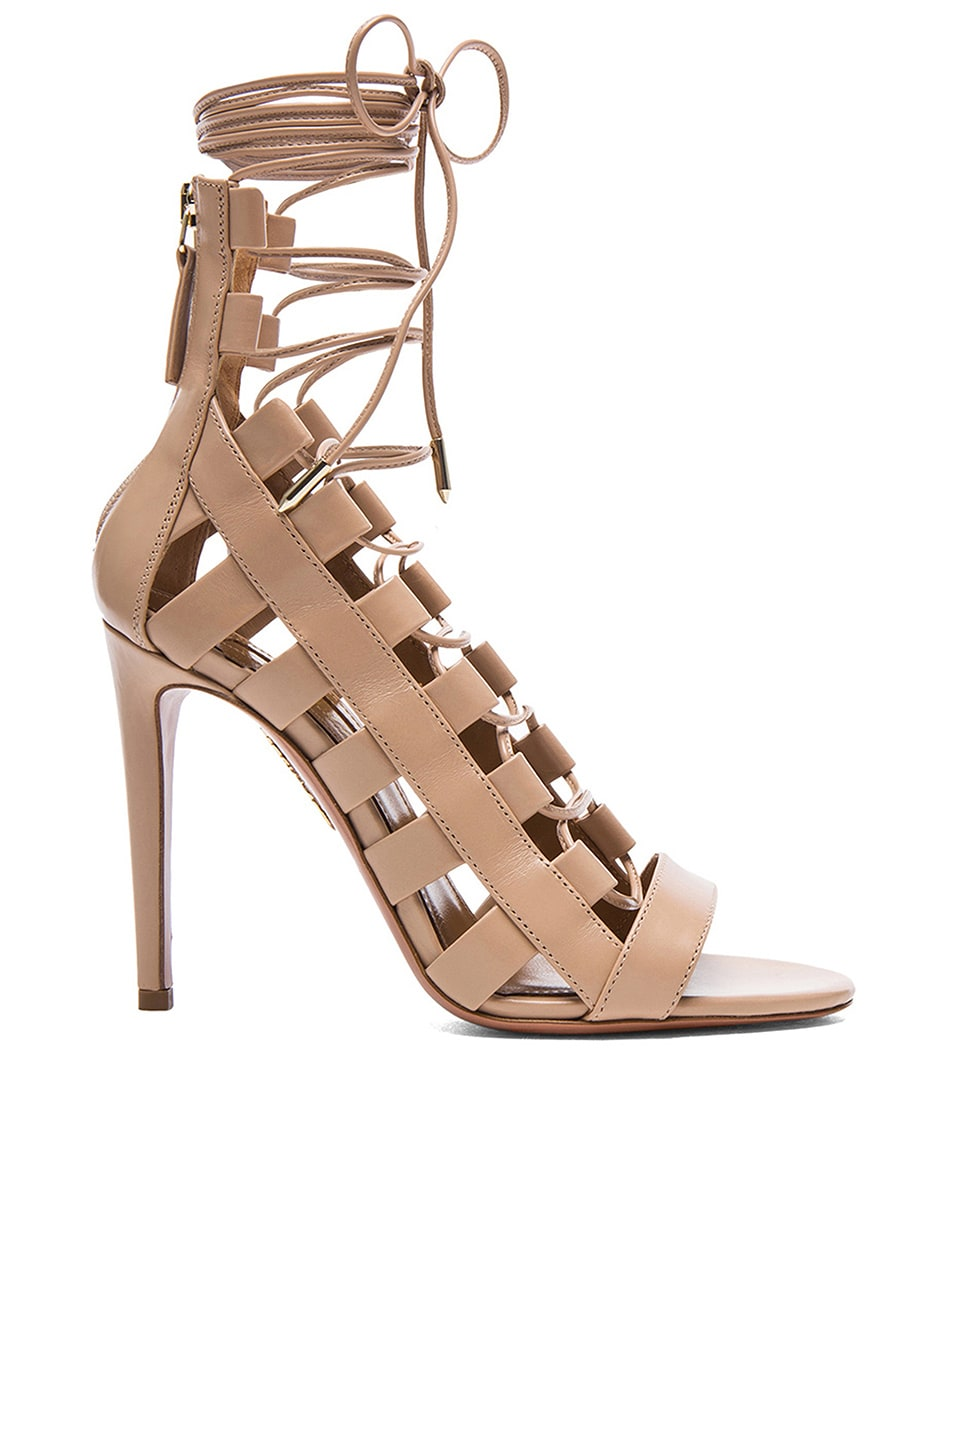 4748e1755d7 Image 1 of Aquazzura Amazon Leather Heels in Nude